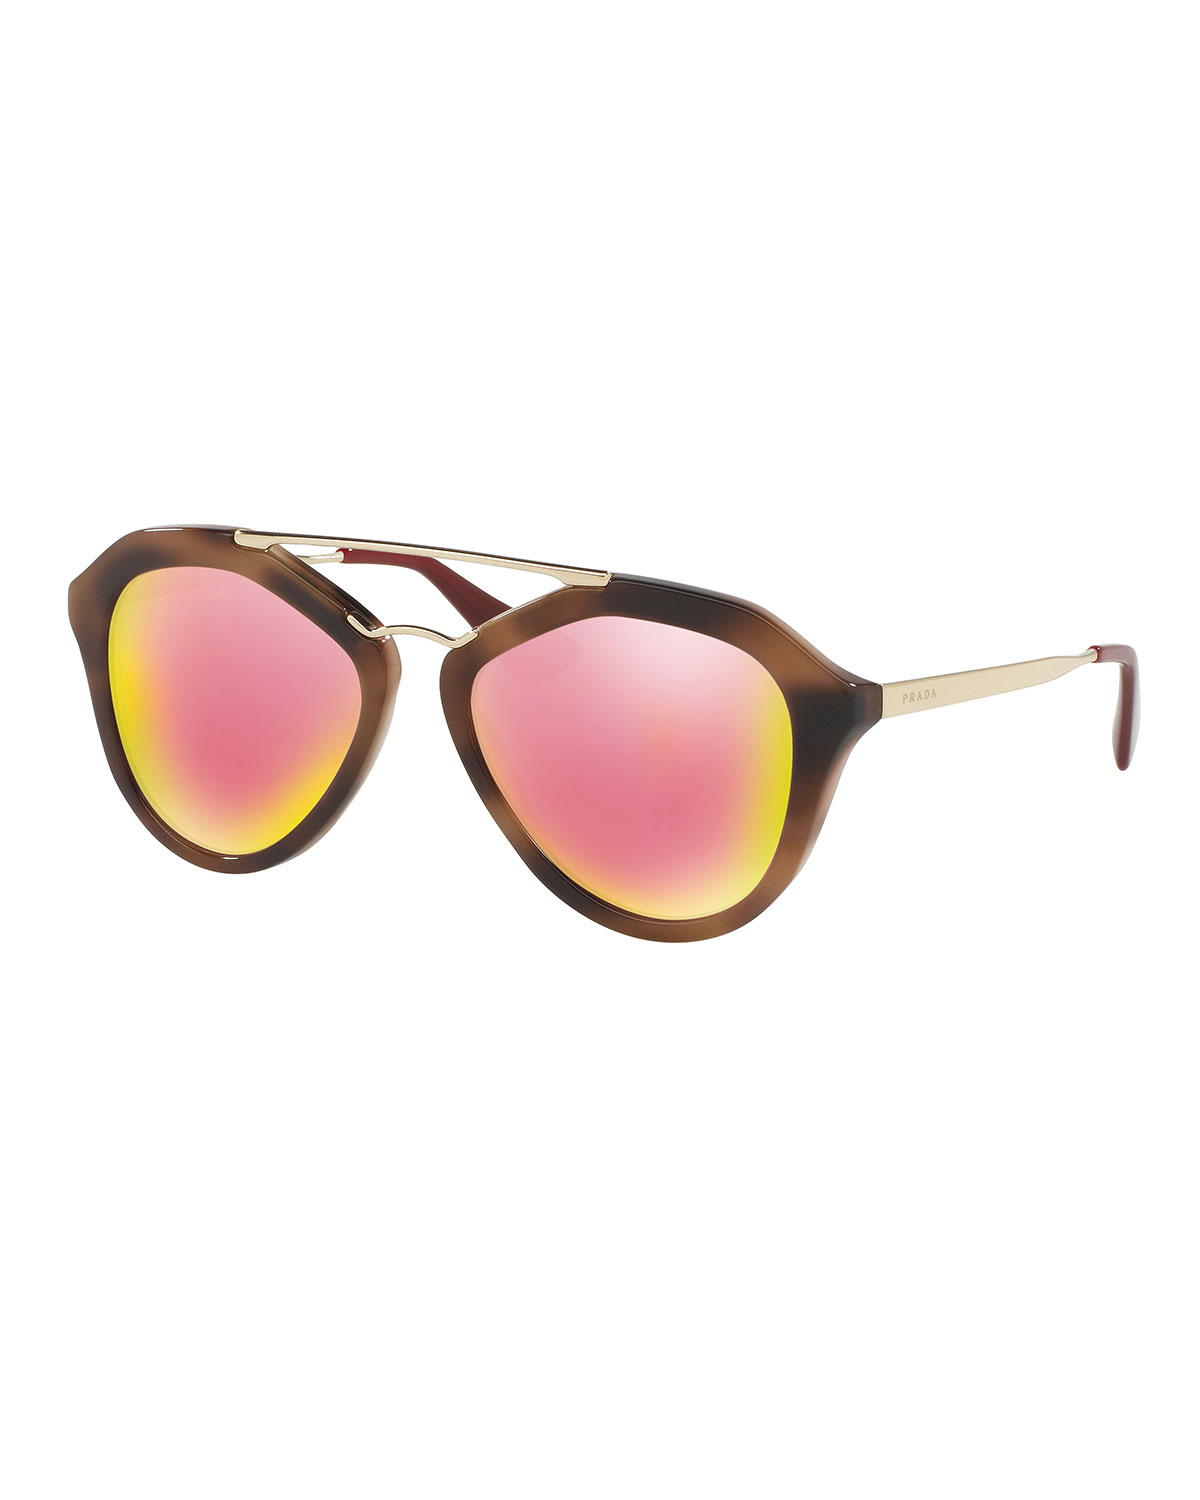 Iridescent Geometric Sunglasses, Brown